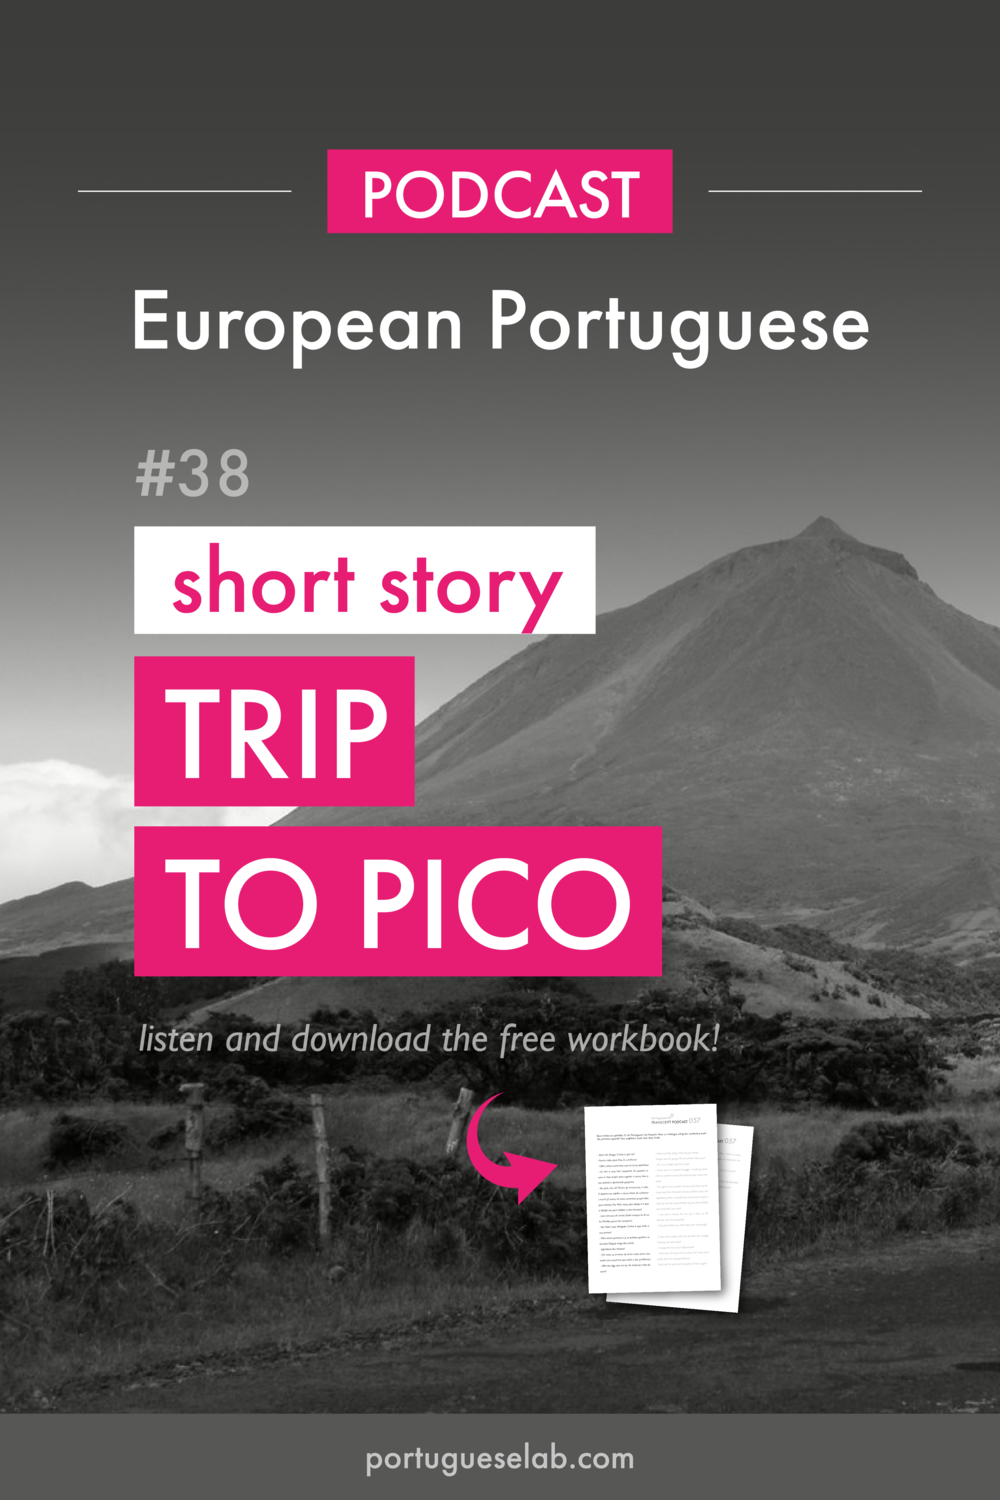 Portuguese Lab Podcast - European Portuguese - 38 - Trip to Pico - short story.png